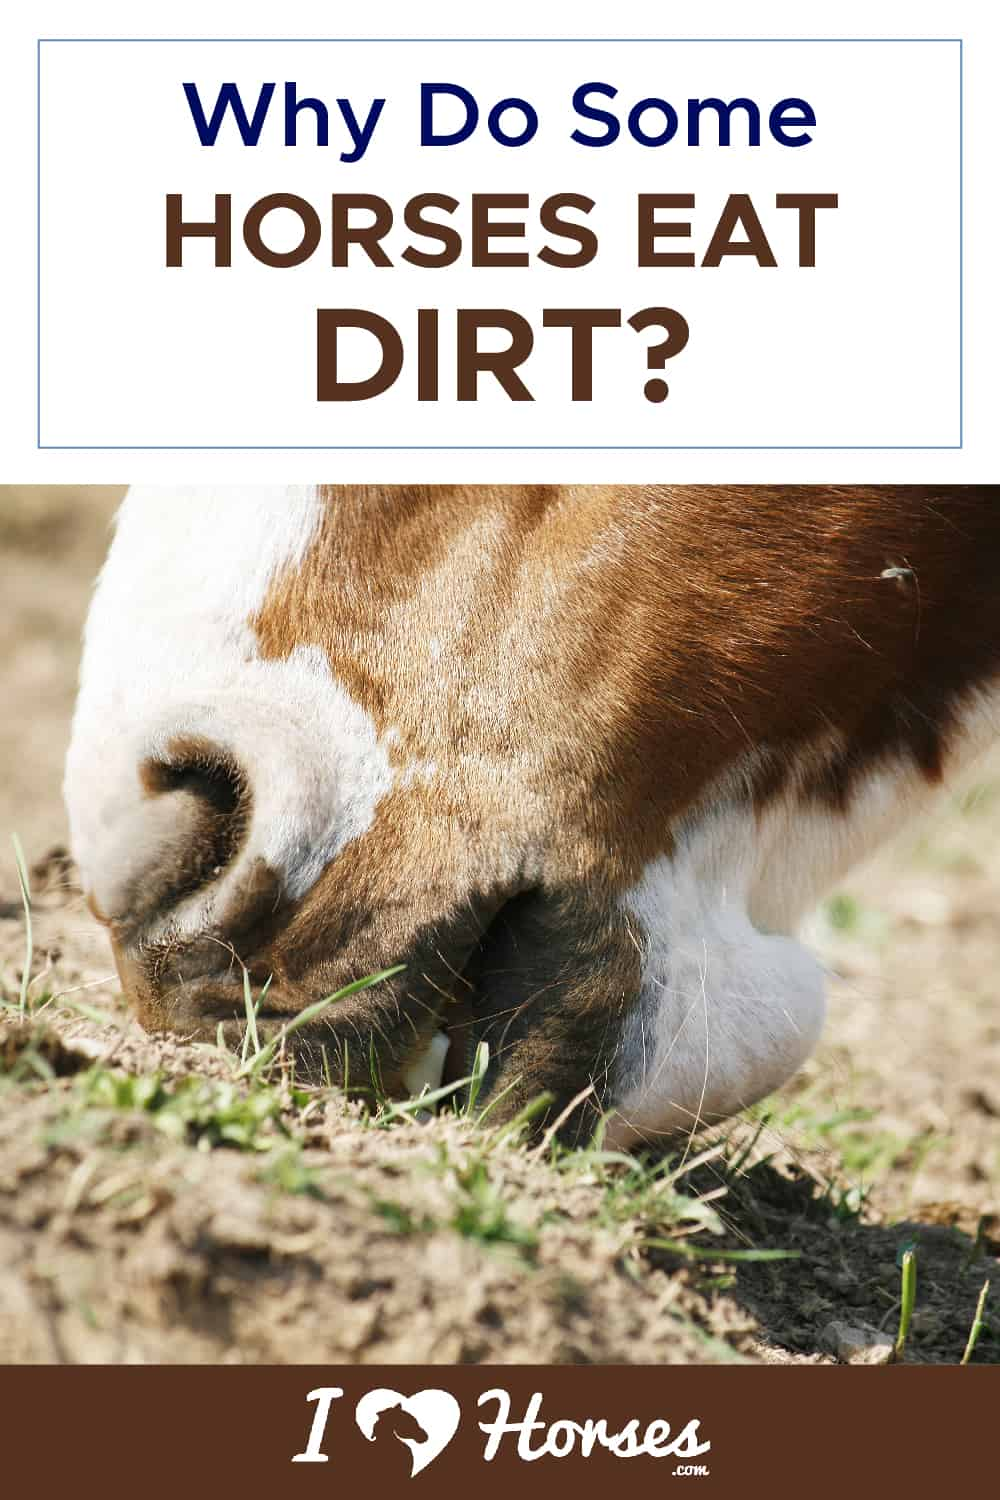 Why Do Some Horses Eat Dirt-01